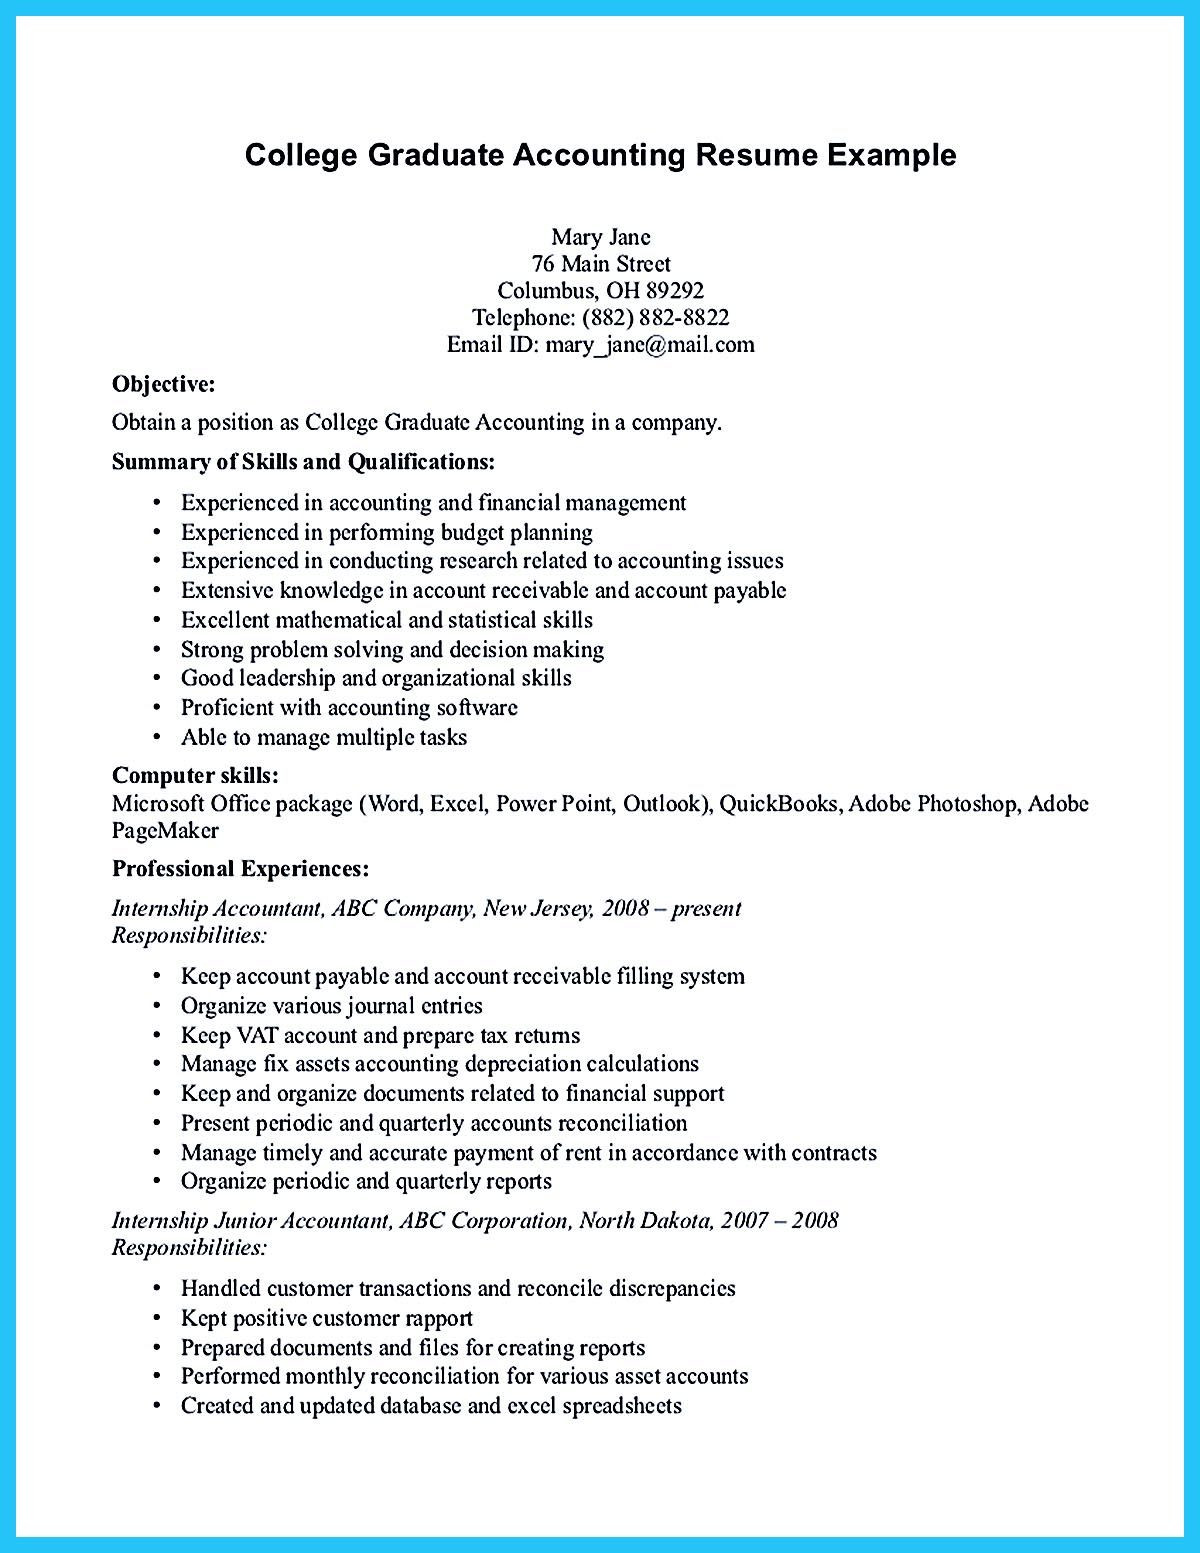 accounting student resume here presents how the resume of accounting student clearly made the acco